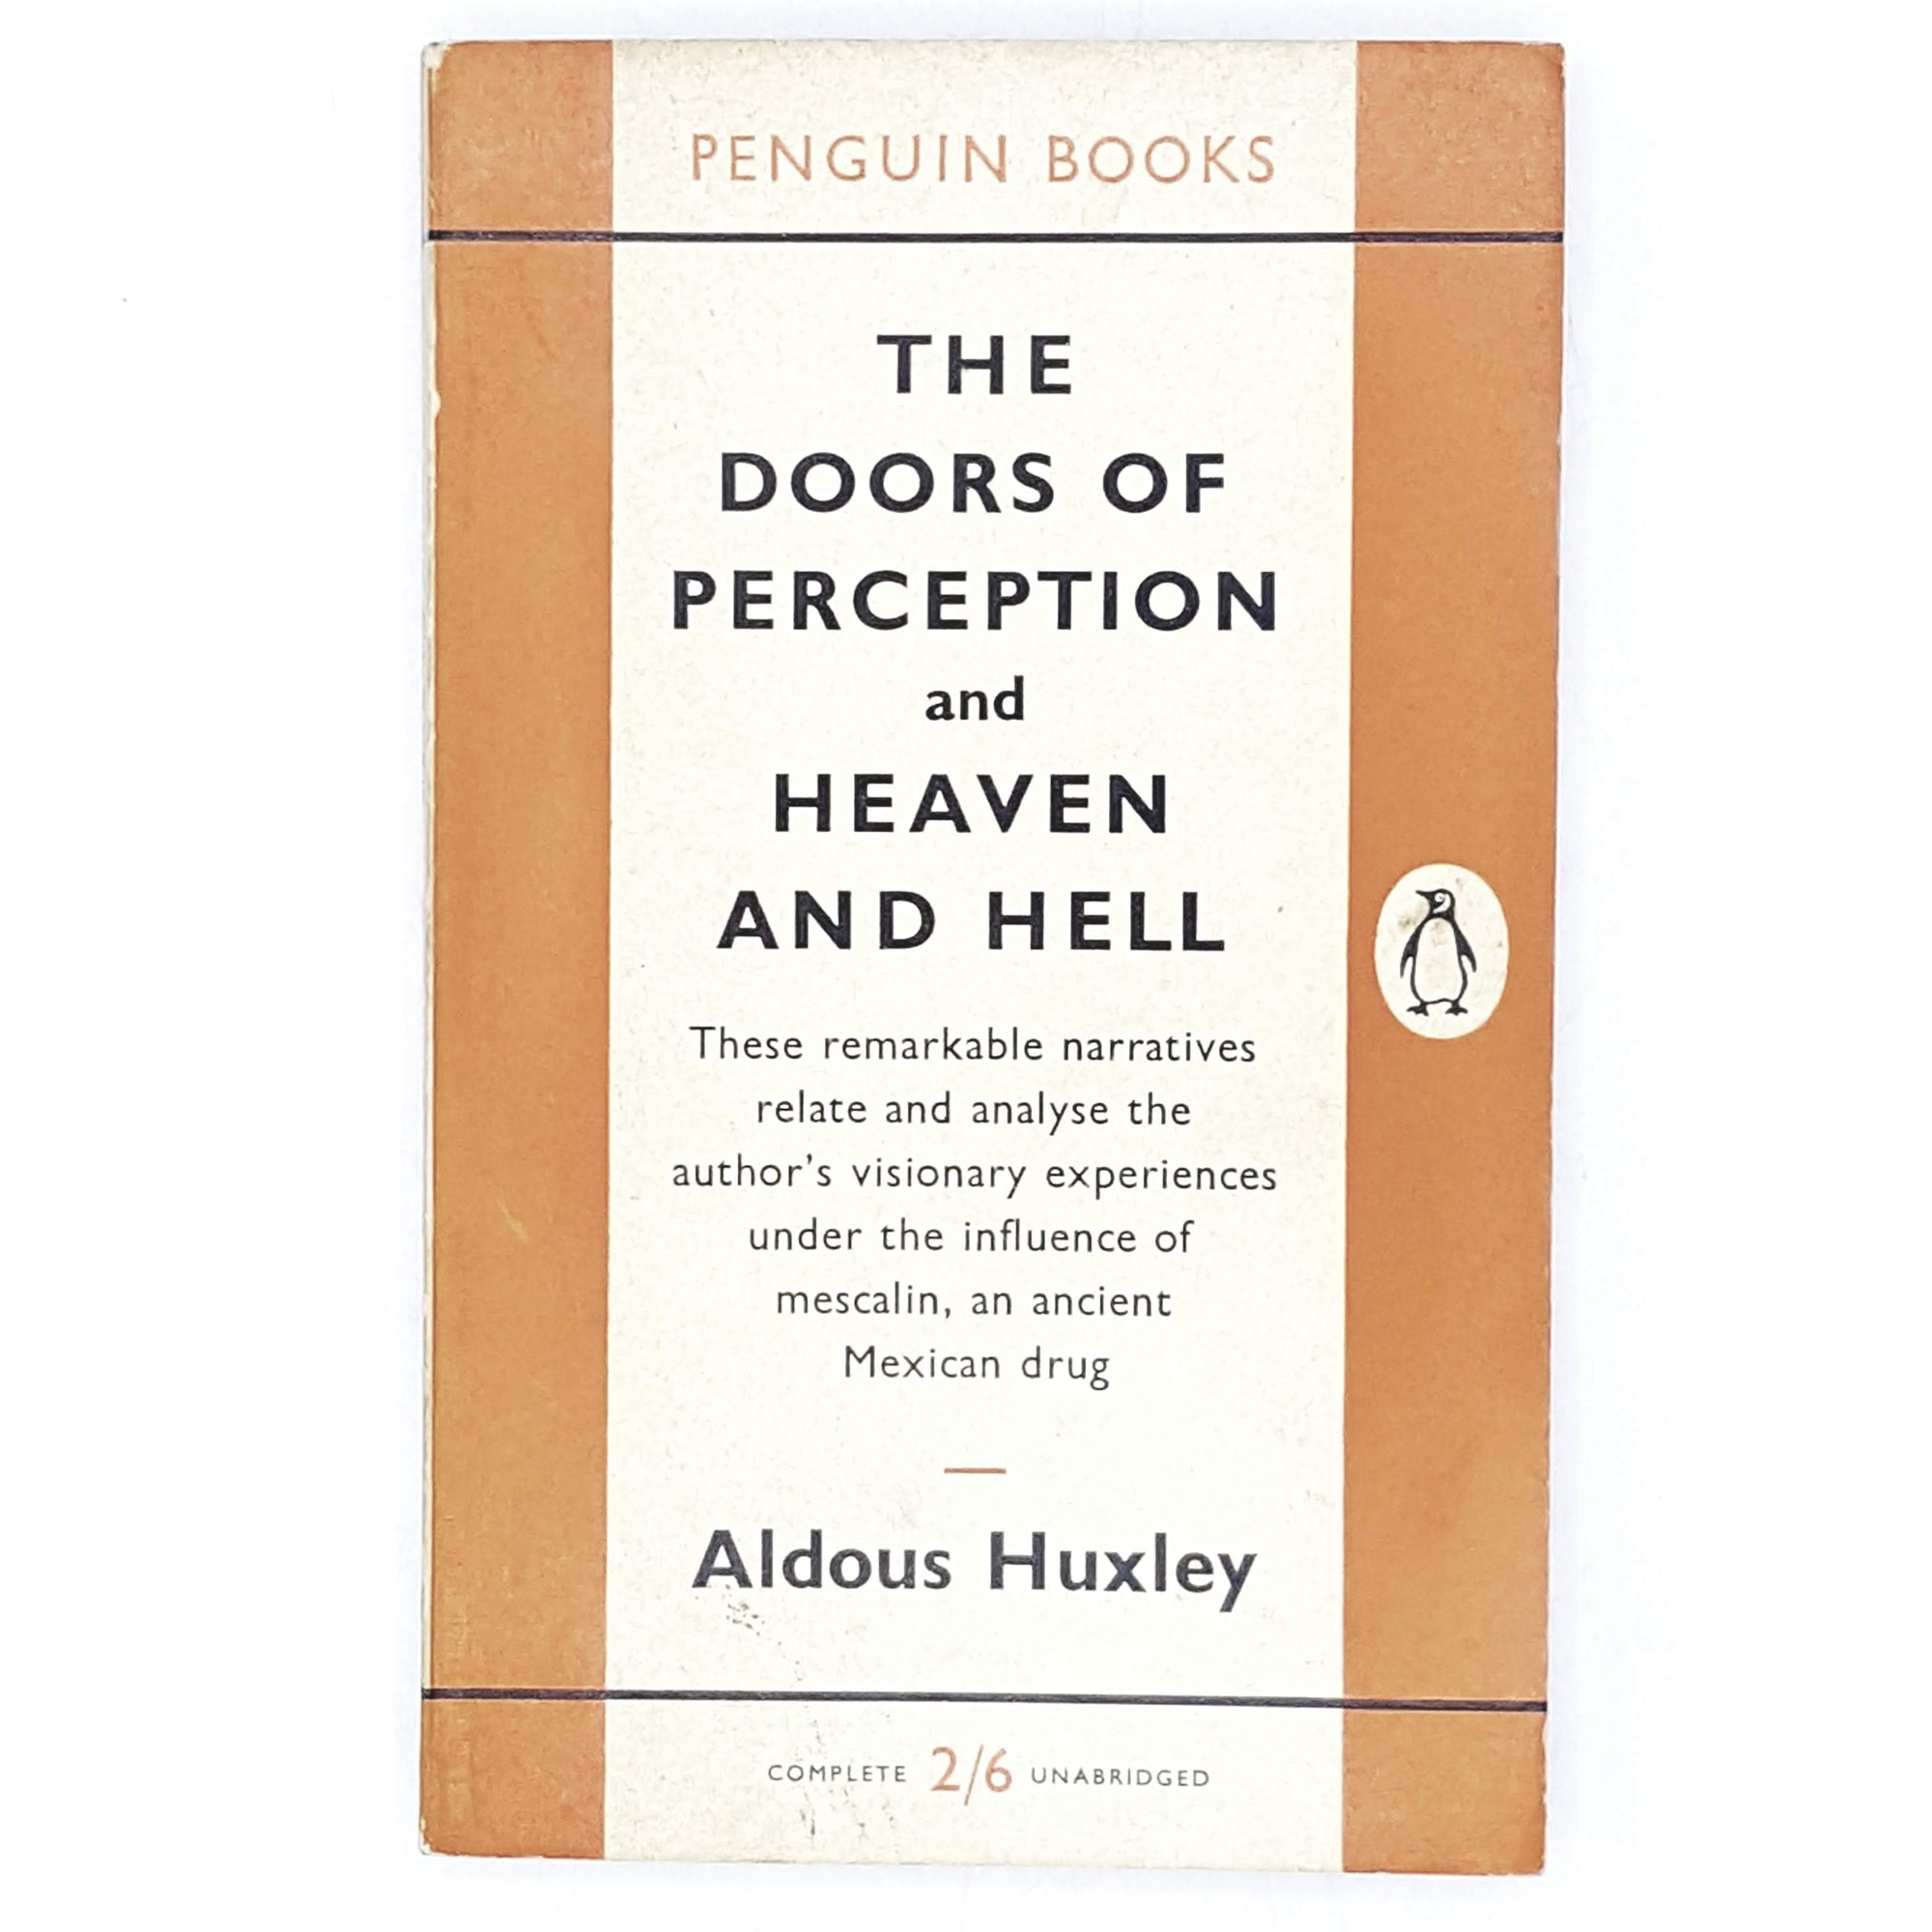 Aldous Huxley's The Doors of Perception and Heaven and Hell 1959